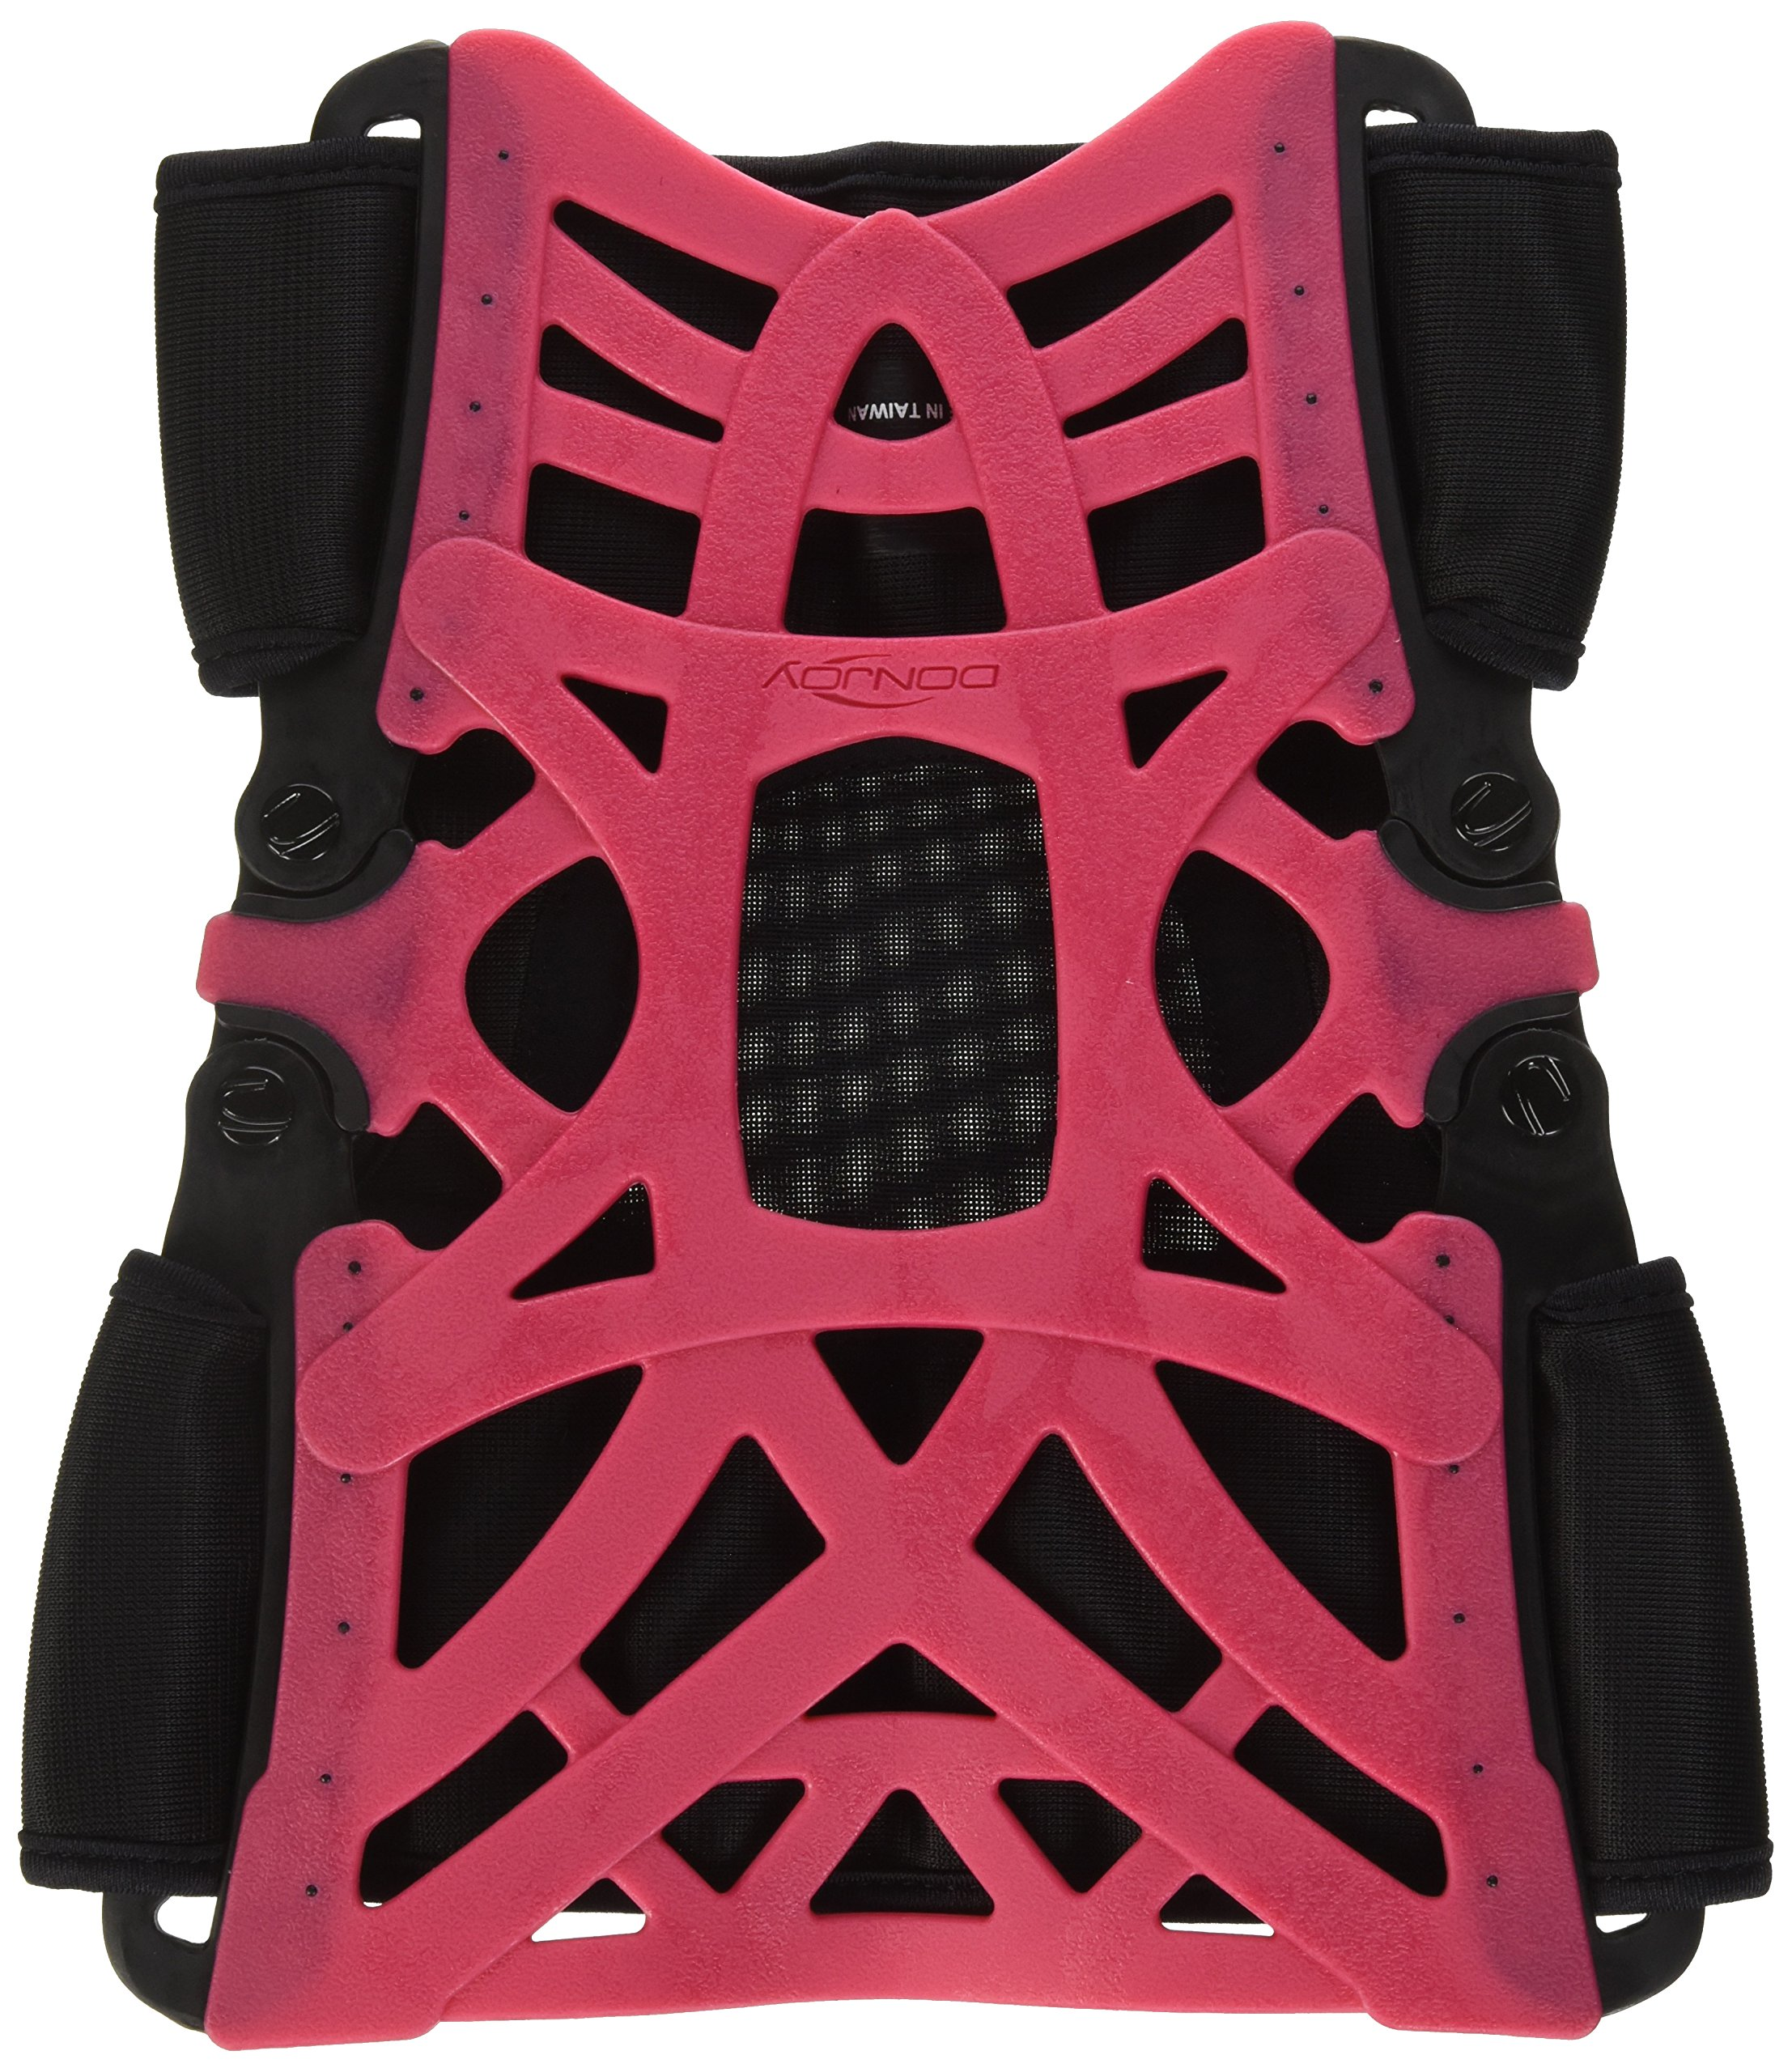 DonJoy Reaction Web Knee Support Brace with Compression Undersleeve: Pink, Medium/Large